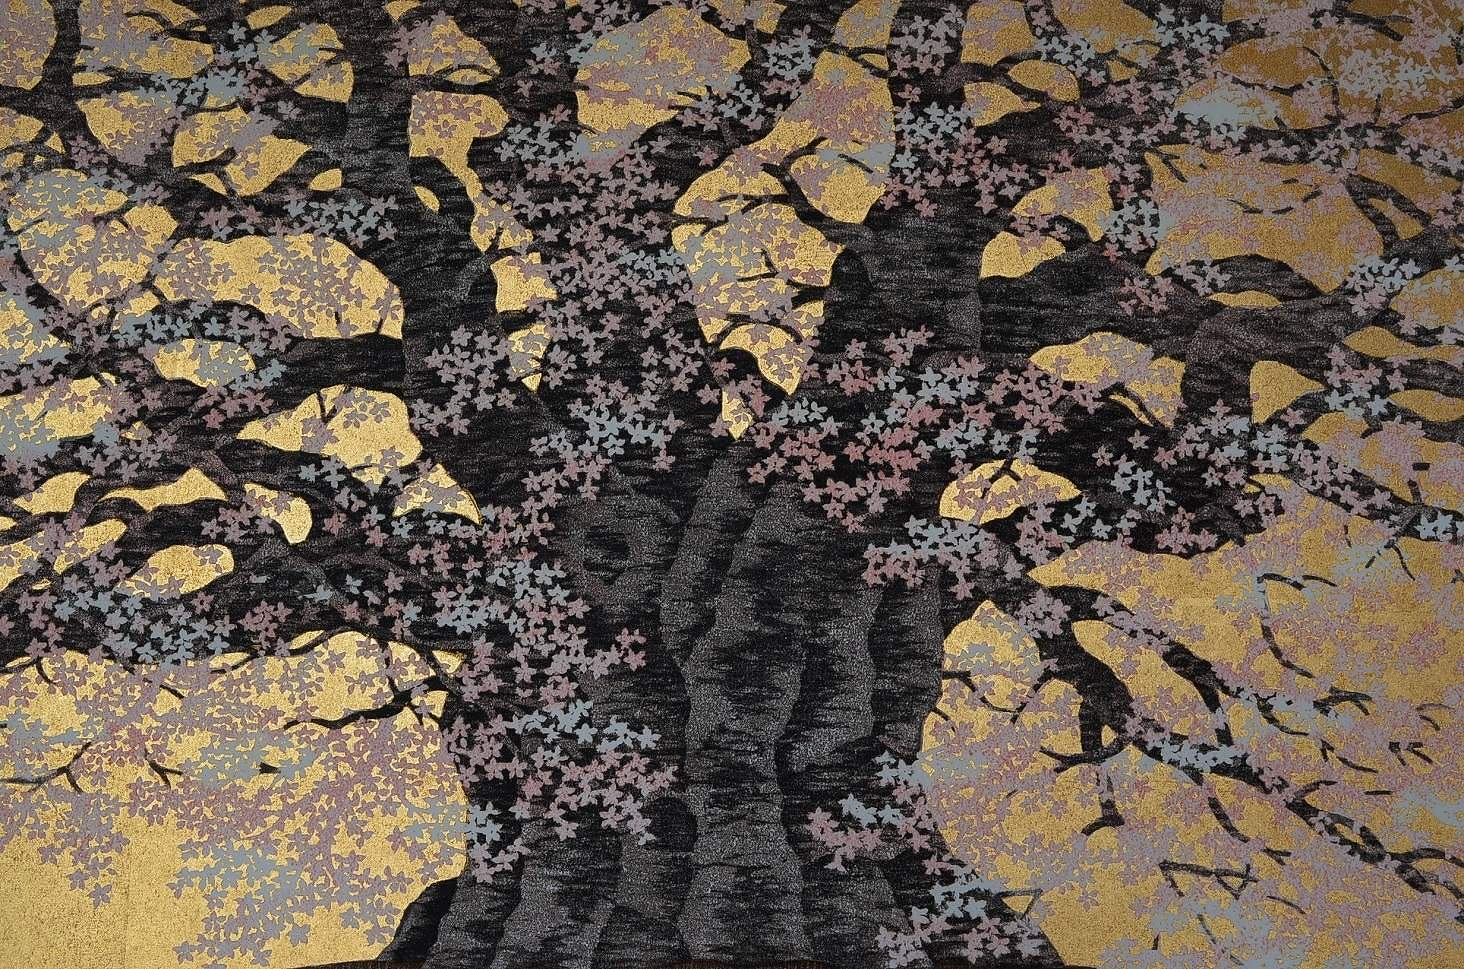 HAJIME NAMIKI: #P4999 DIAGO ZAKURA - ONE HUNDERED YEAR OLD CHERRY TREE (detail)